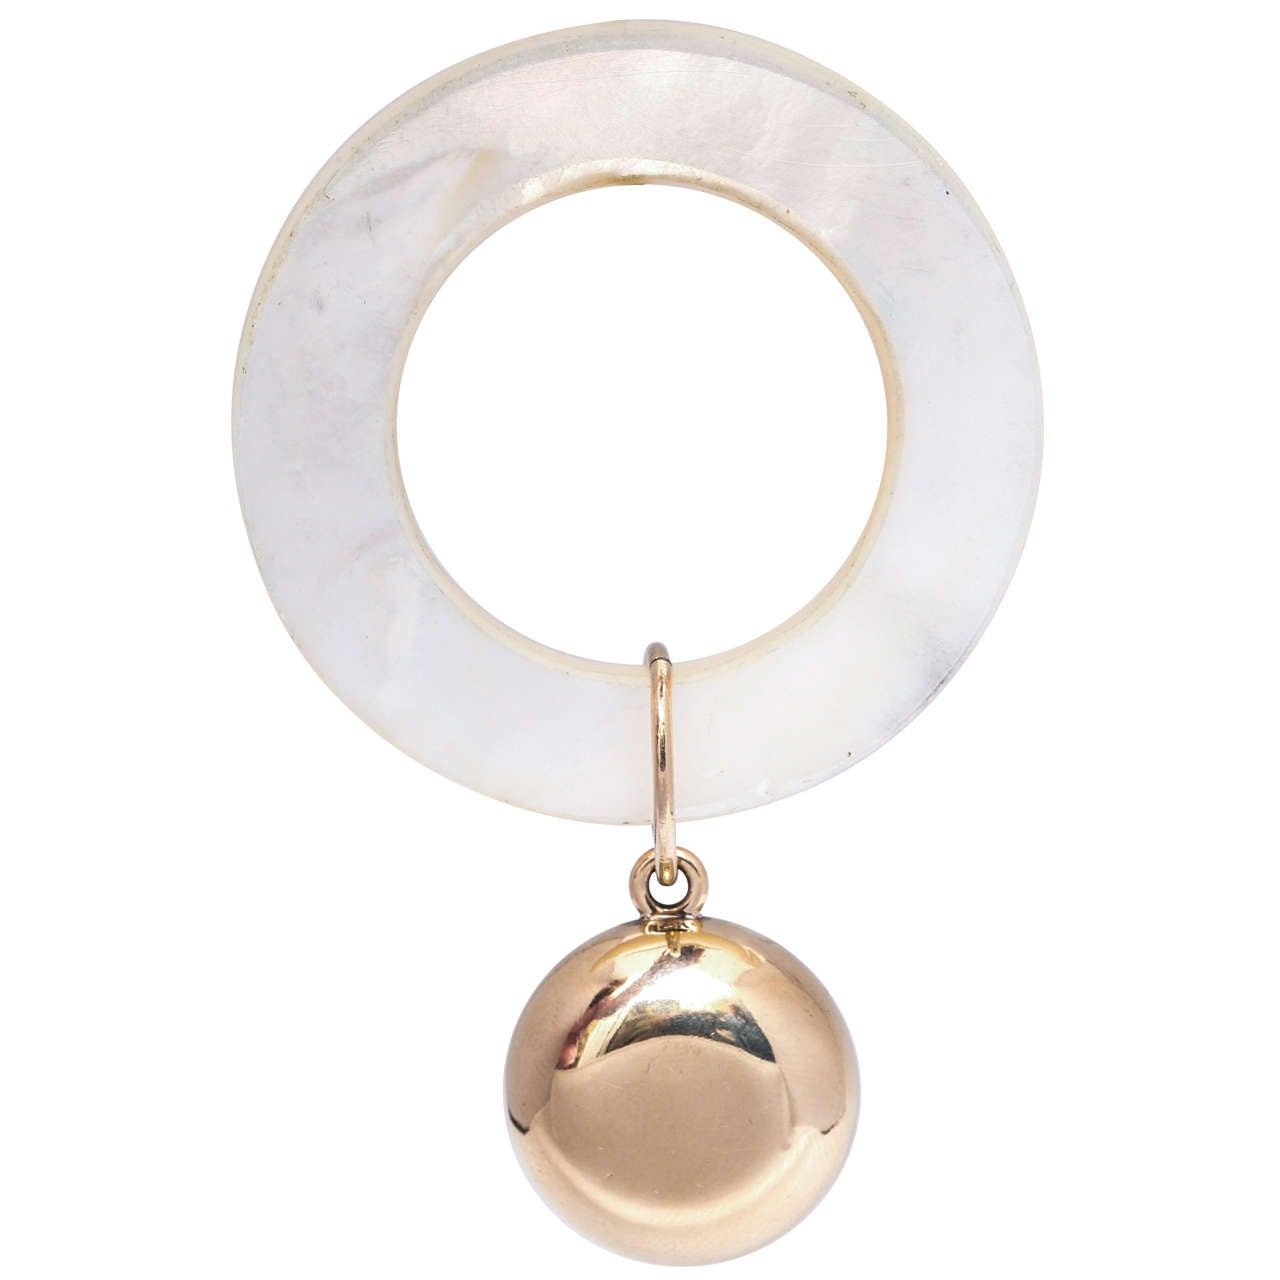 Tiffany Edwardian 14 Karat Gold And Mother Of Pearl Baby